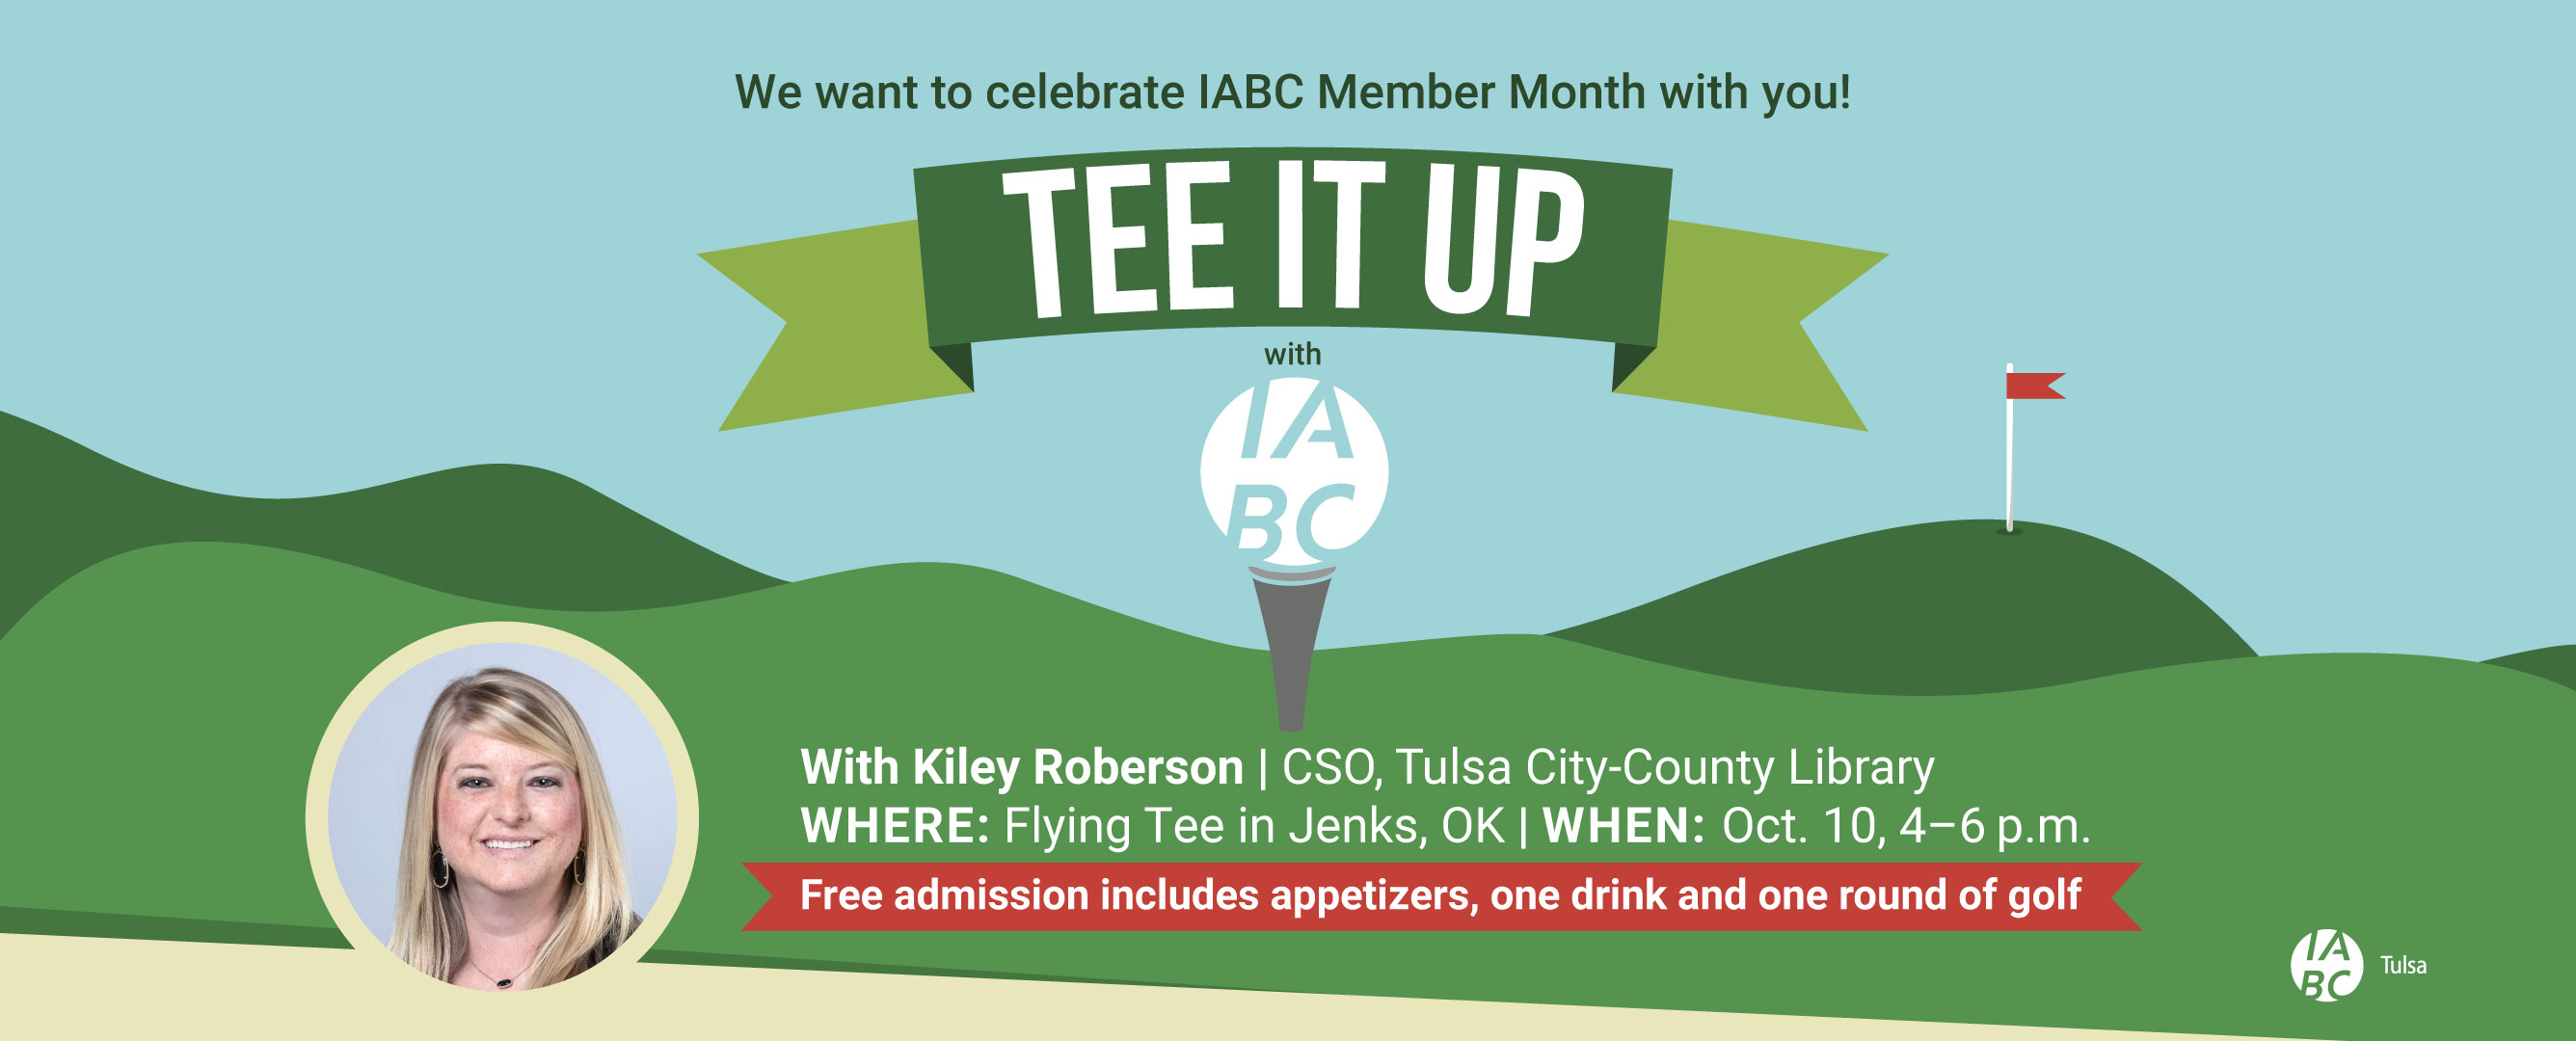 Tee It Up with IABC!